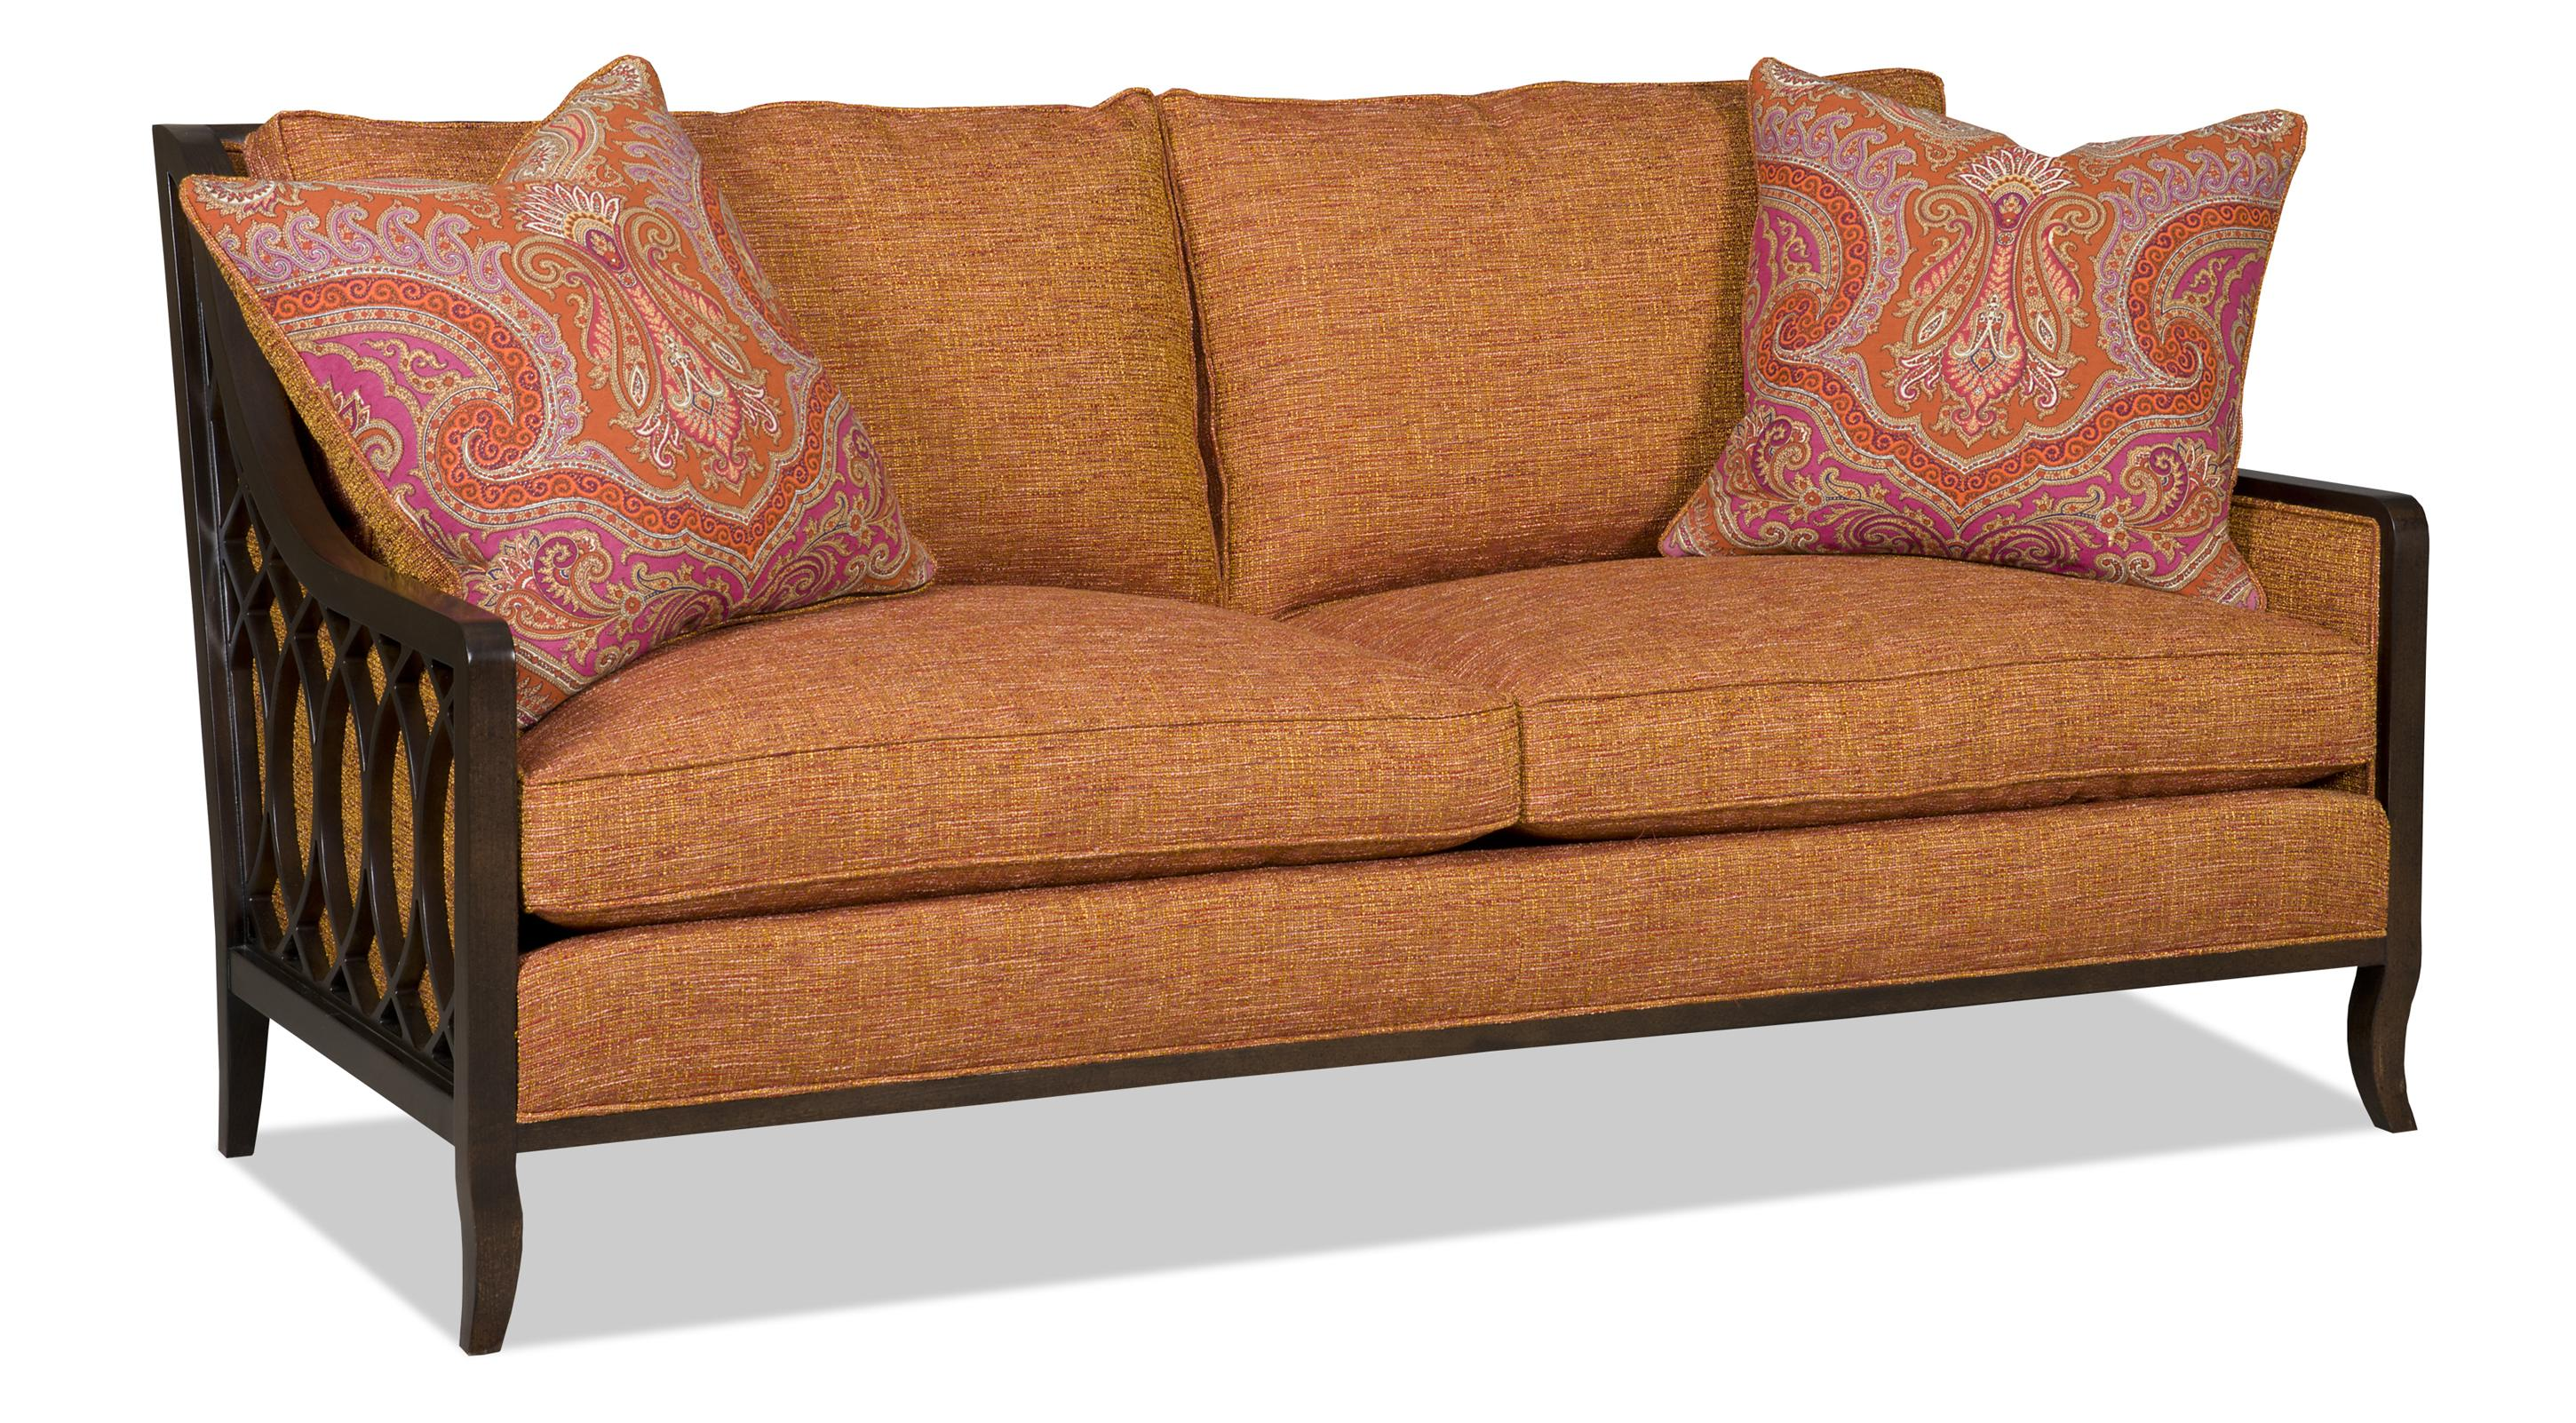 sofa wood frame exposed uk leather online australia two over with lattice arms by sam